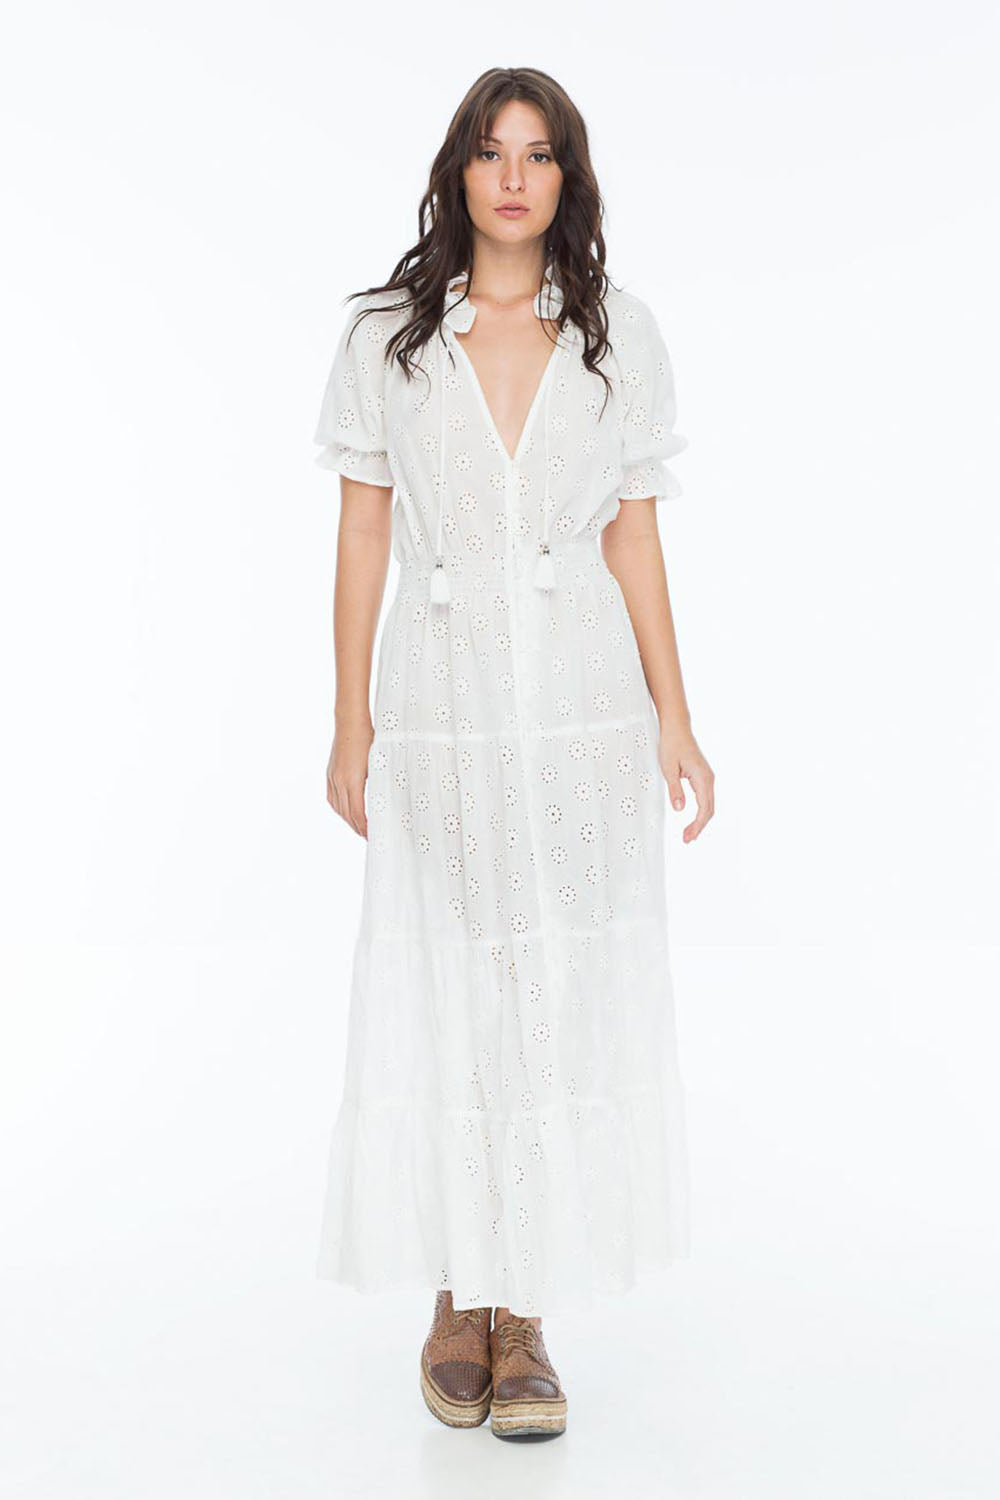 CAROLINA ISSA MAXI DRESS EYELET WHITE